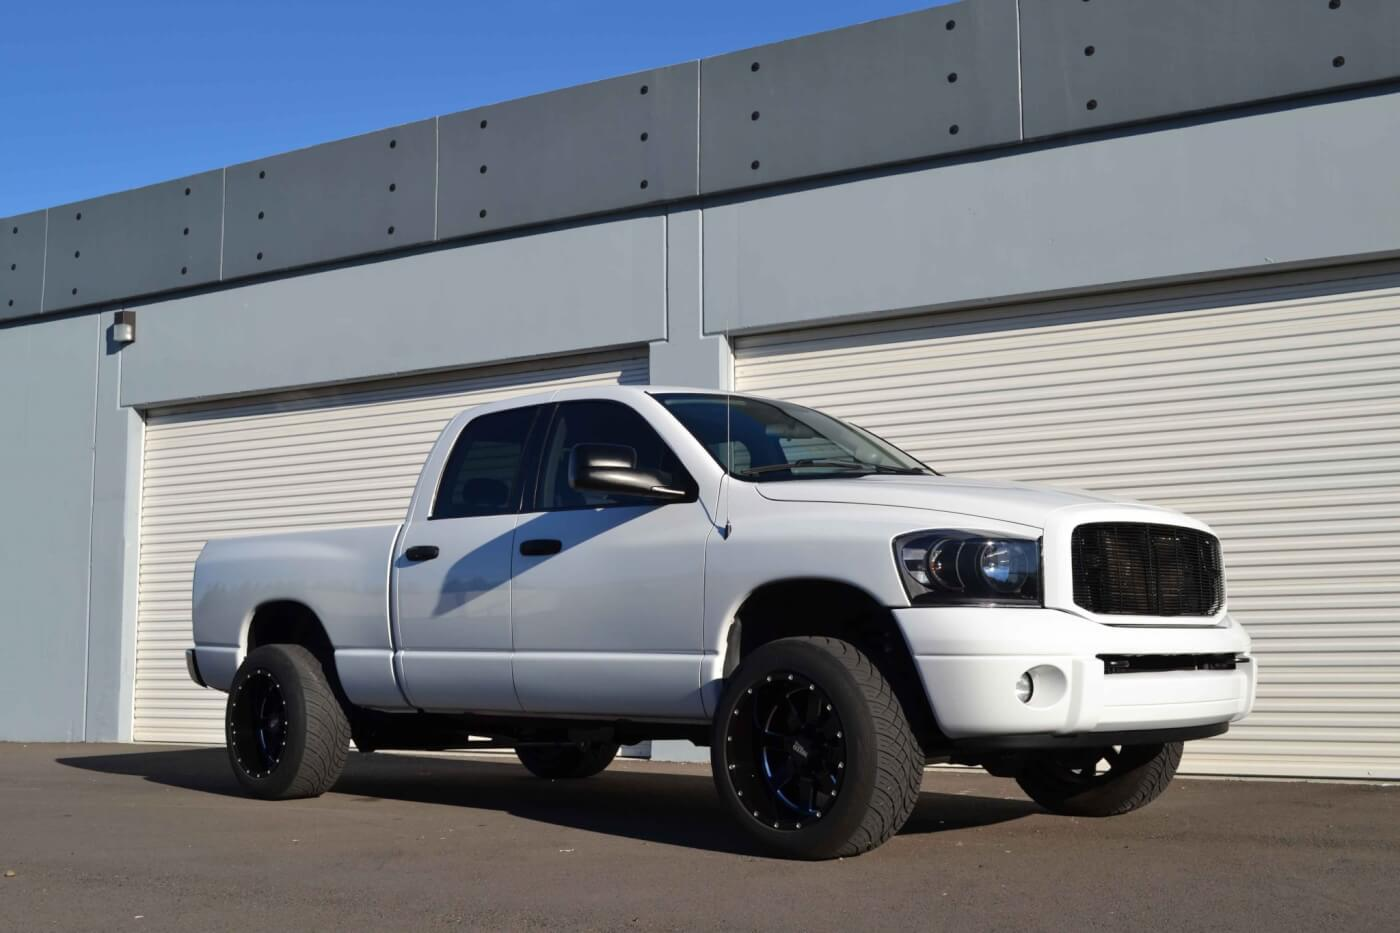 10-Second Tow Rig: Daily-Driven 900-HP Cummins?